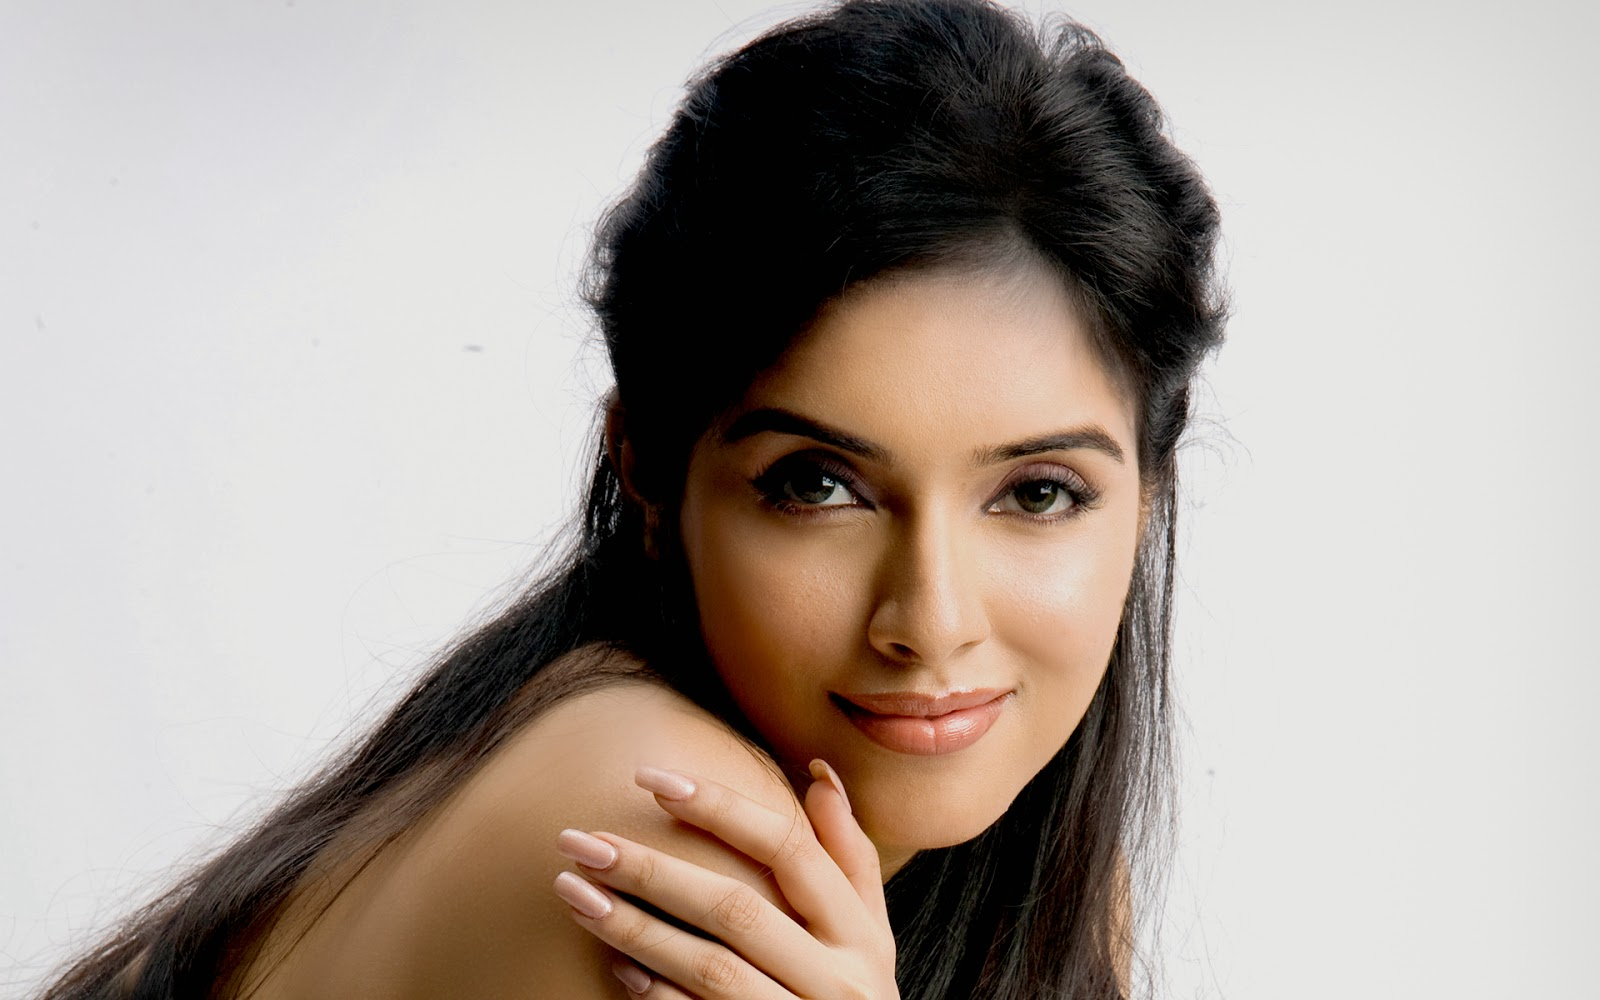 Asin thottumkal hot sexy image download